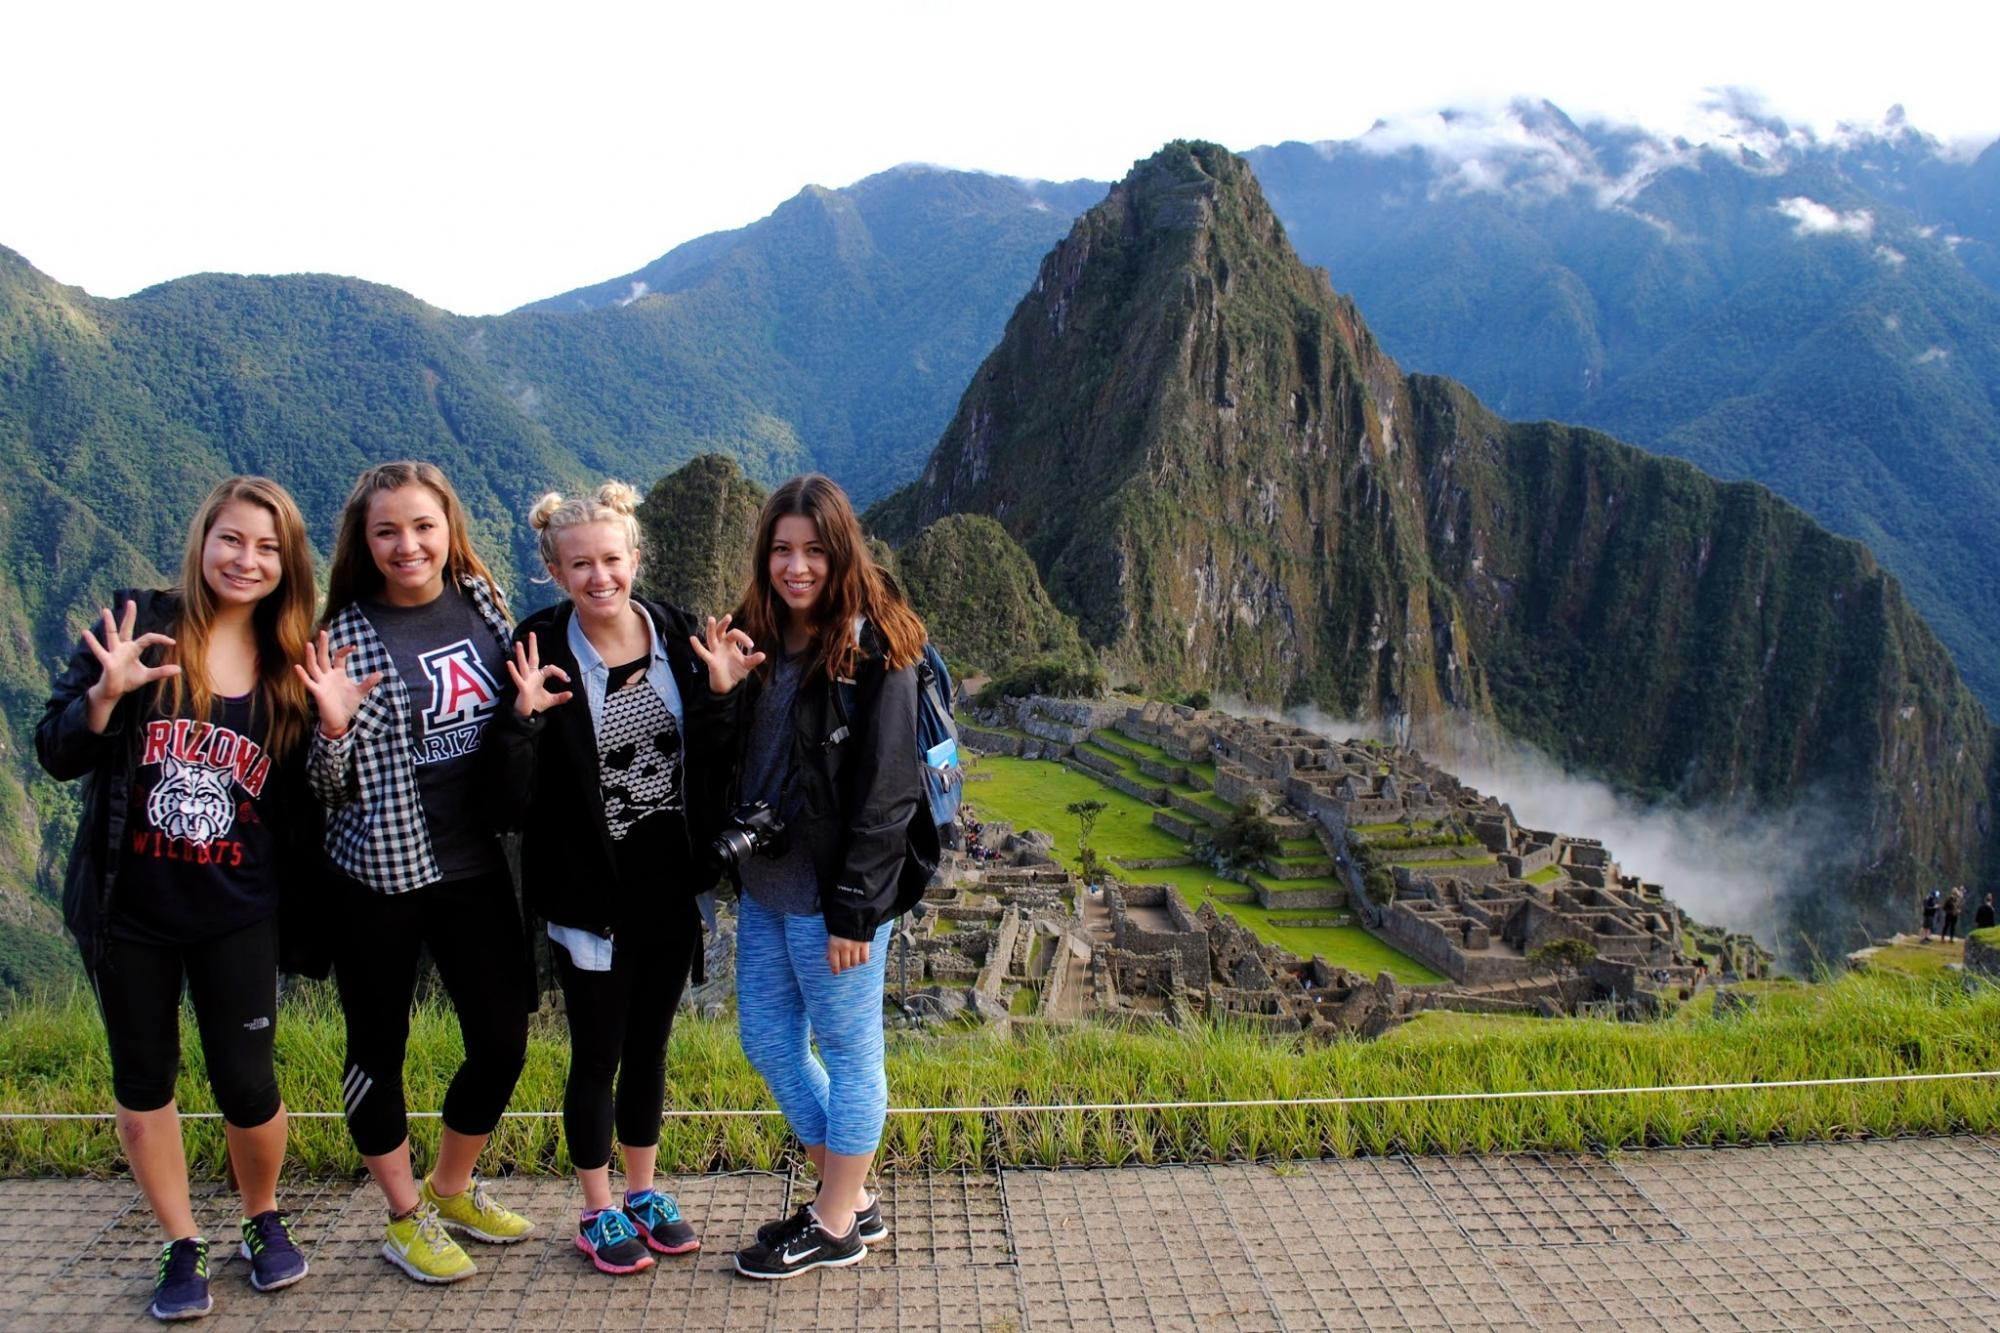 Alumna Kaitlin Corell, who earned a degree in global studies, took a photo with friends at Machu Picchu in Peru.